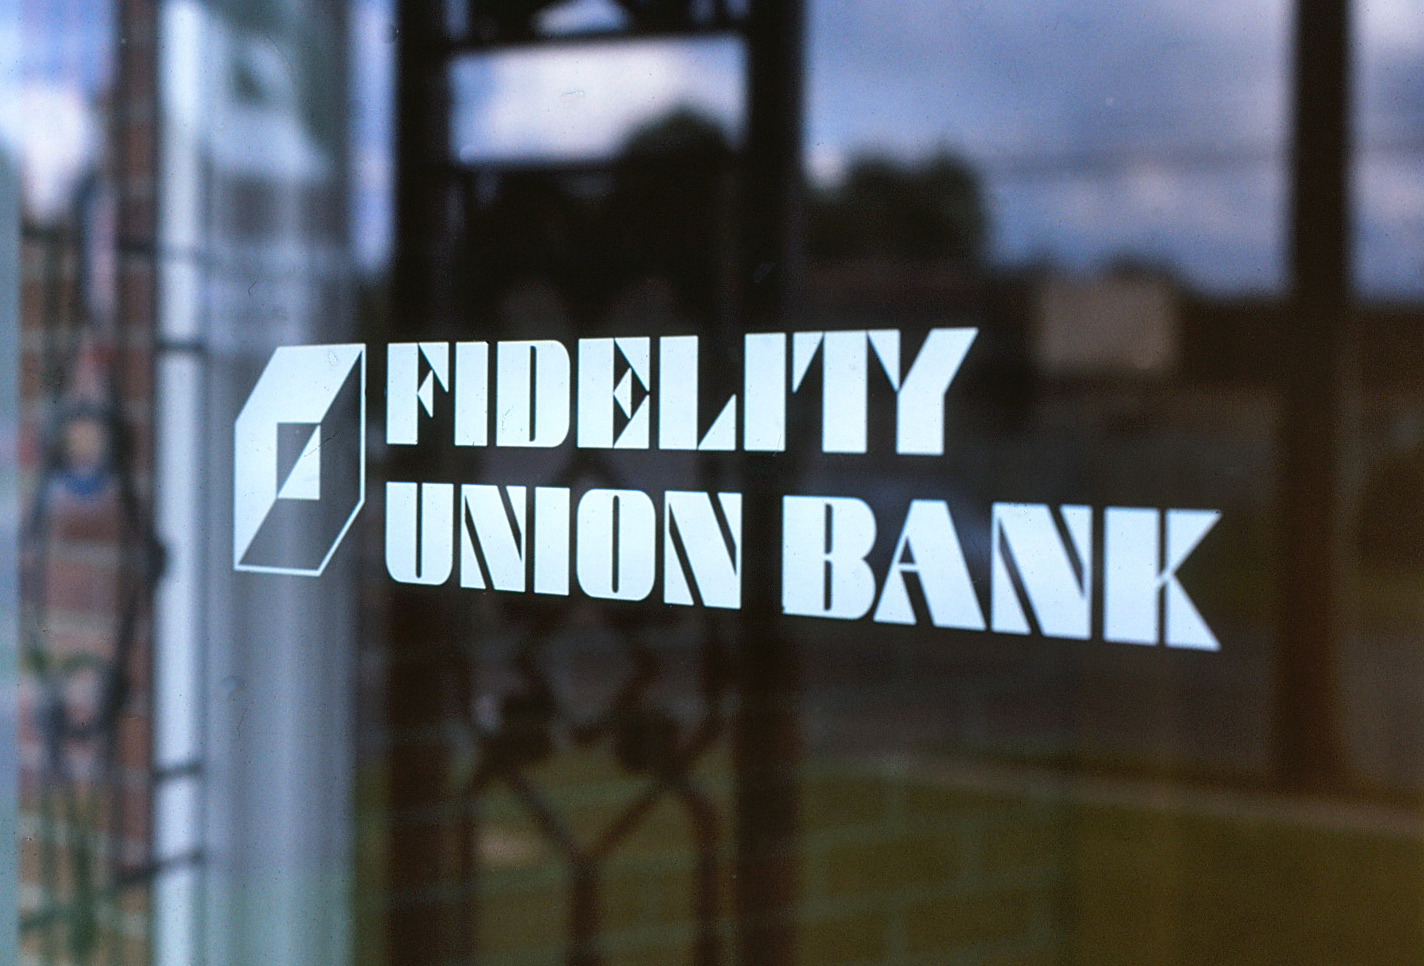 Fidelity Union Bank and logo mounted to a large glass window with white vinyl diecuts.